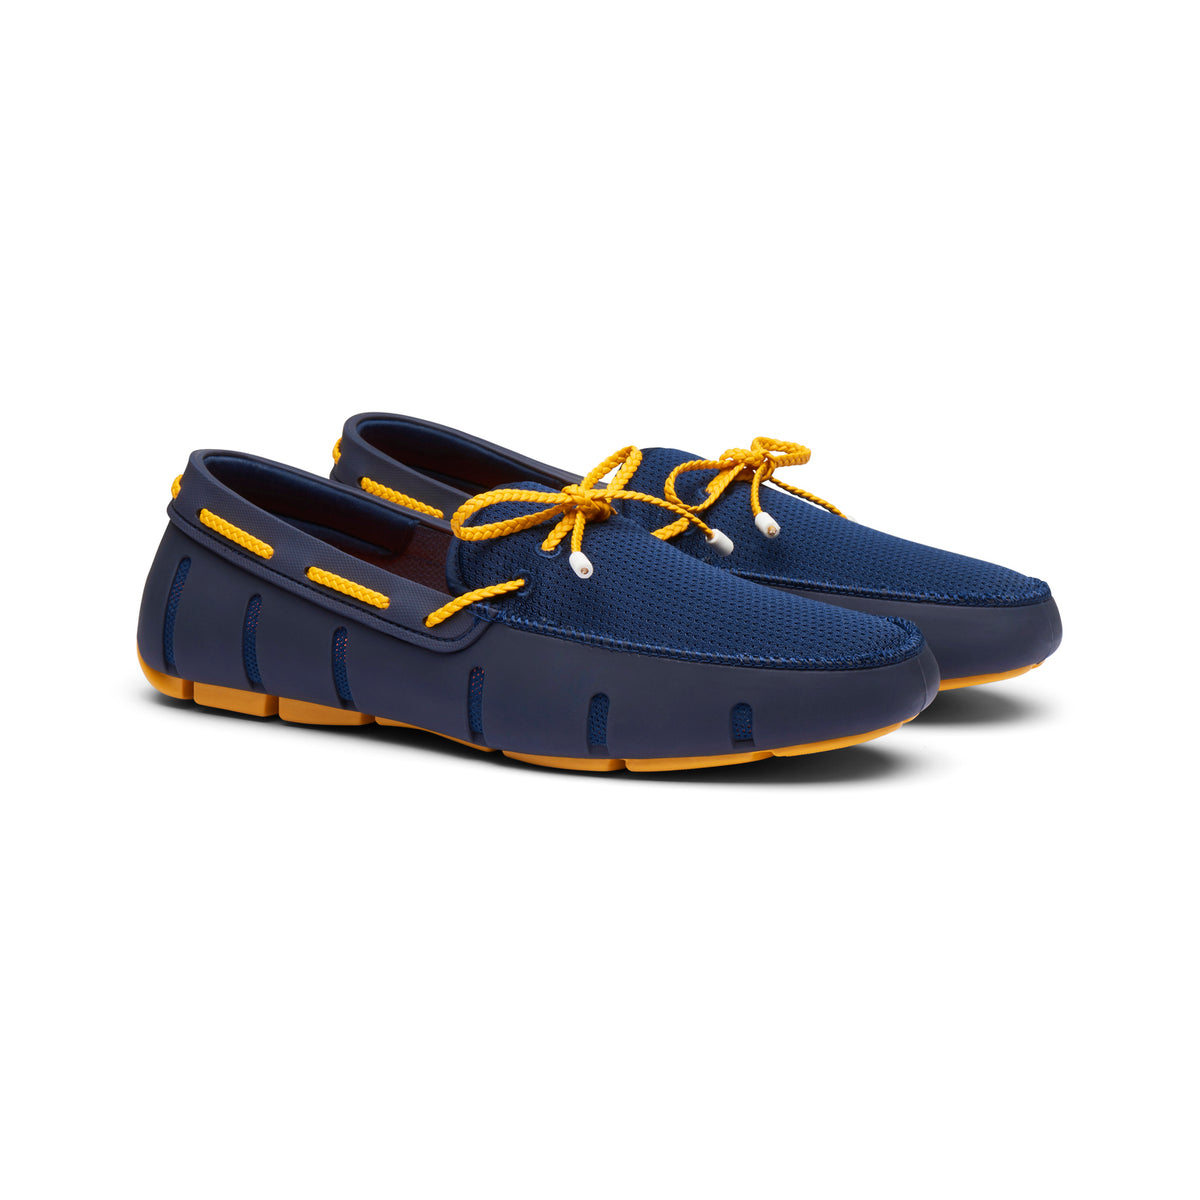 Braided Lace Loafer - background::white,variant::Navy/Gold Fusion